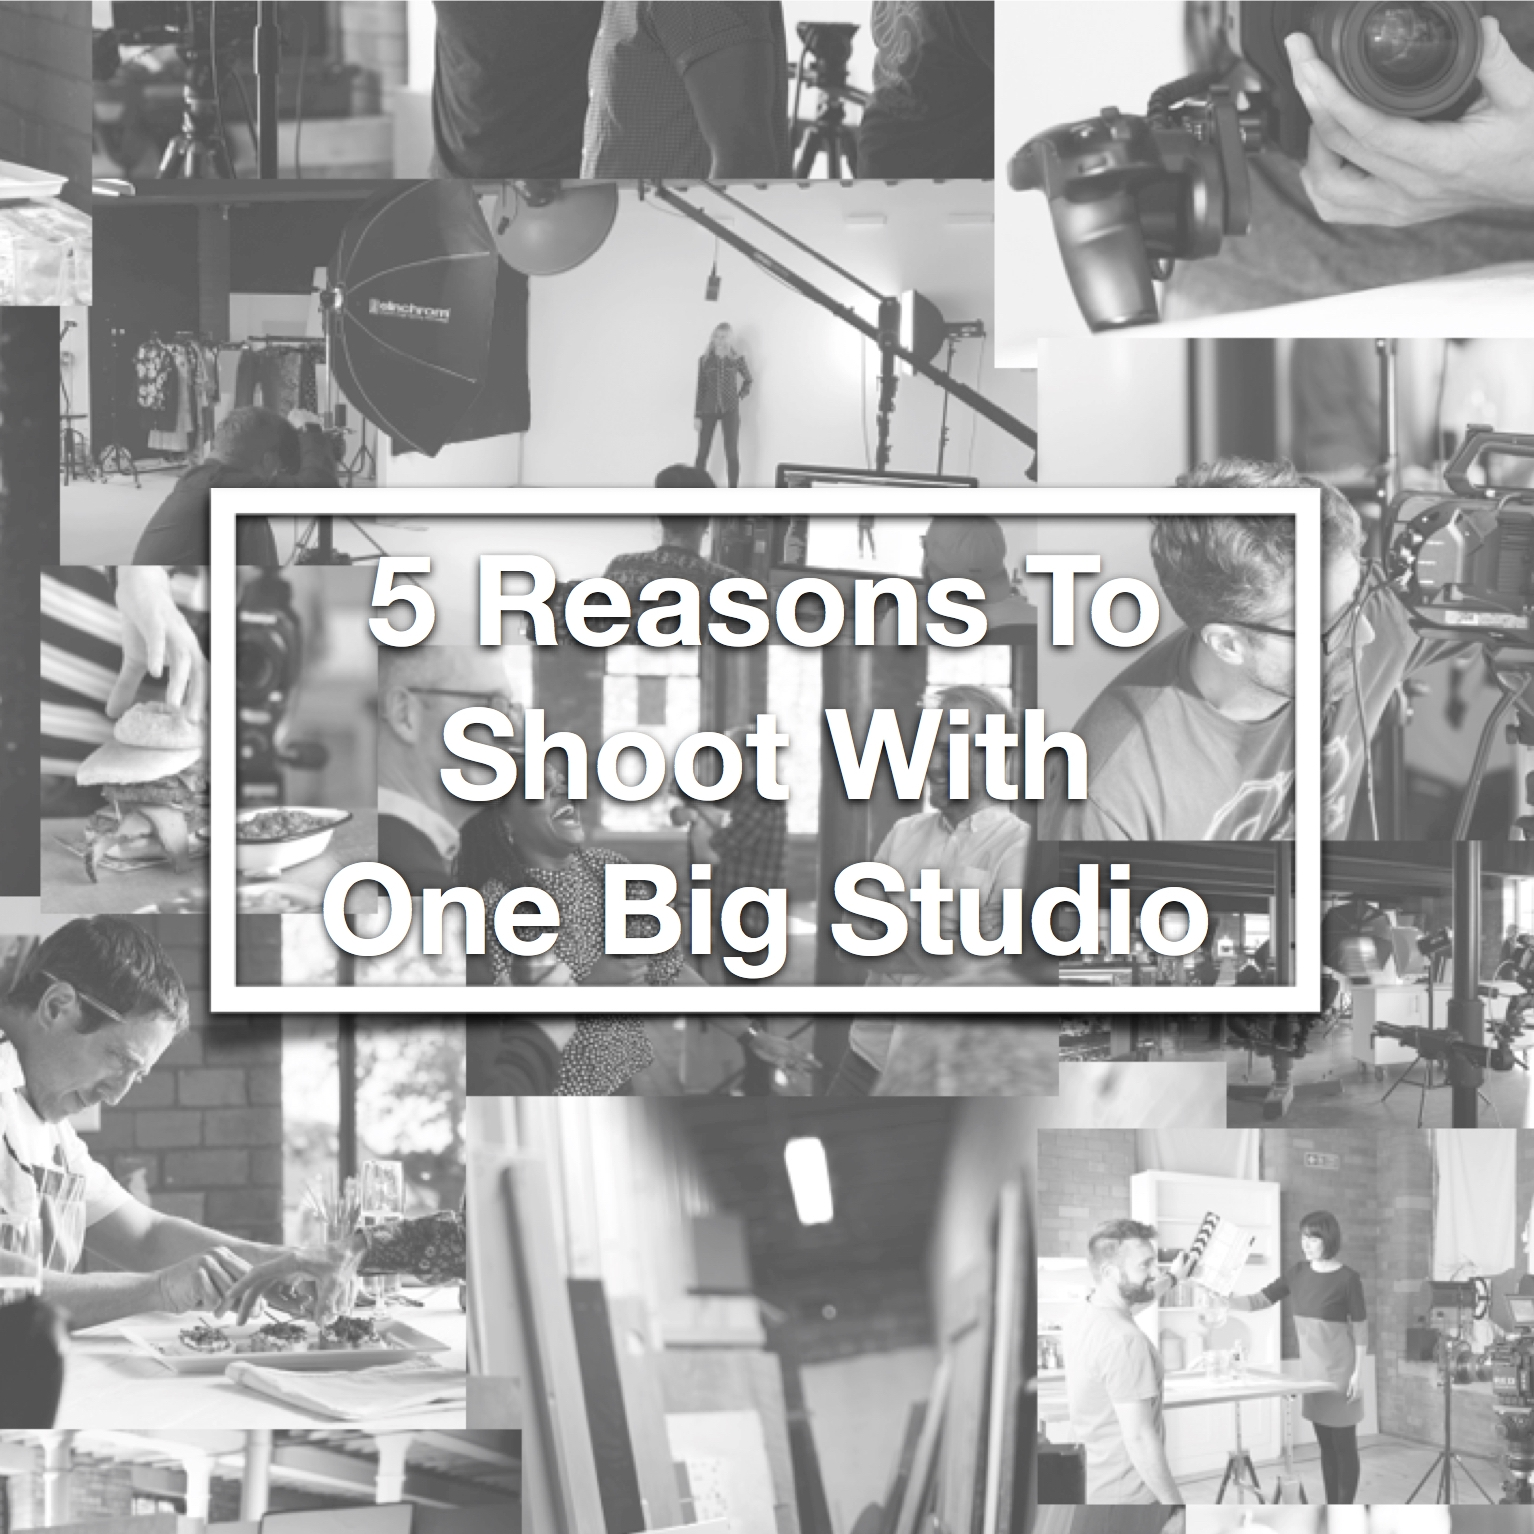 5 Reasons To Shoot With One Big Studio     August 2018   Ever wanted to know what the most cost-effective way of procuring your stills and video content is without compromising on quality or brand consistency? Let us introduce you to 'The Power of In House'...